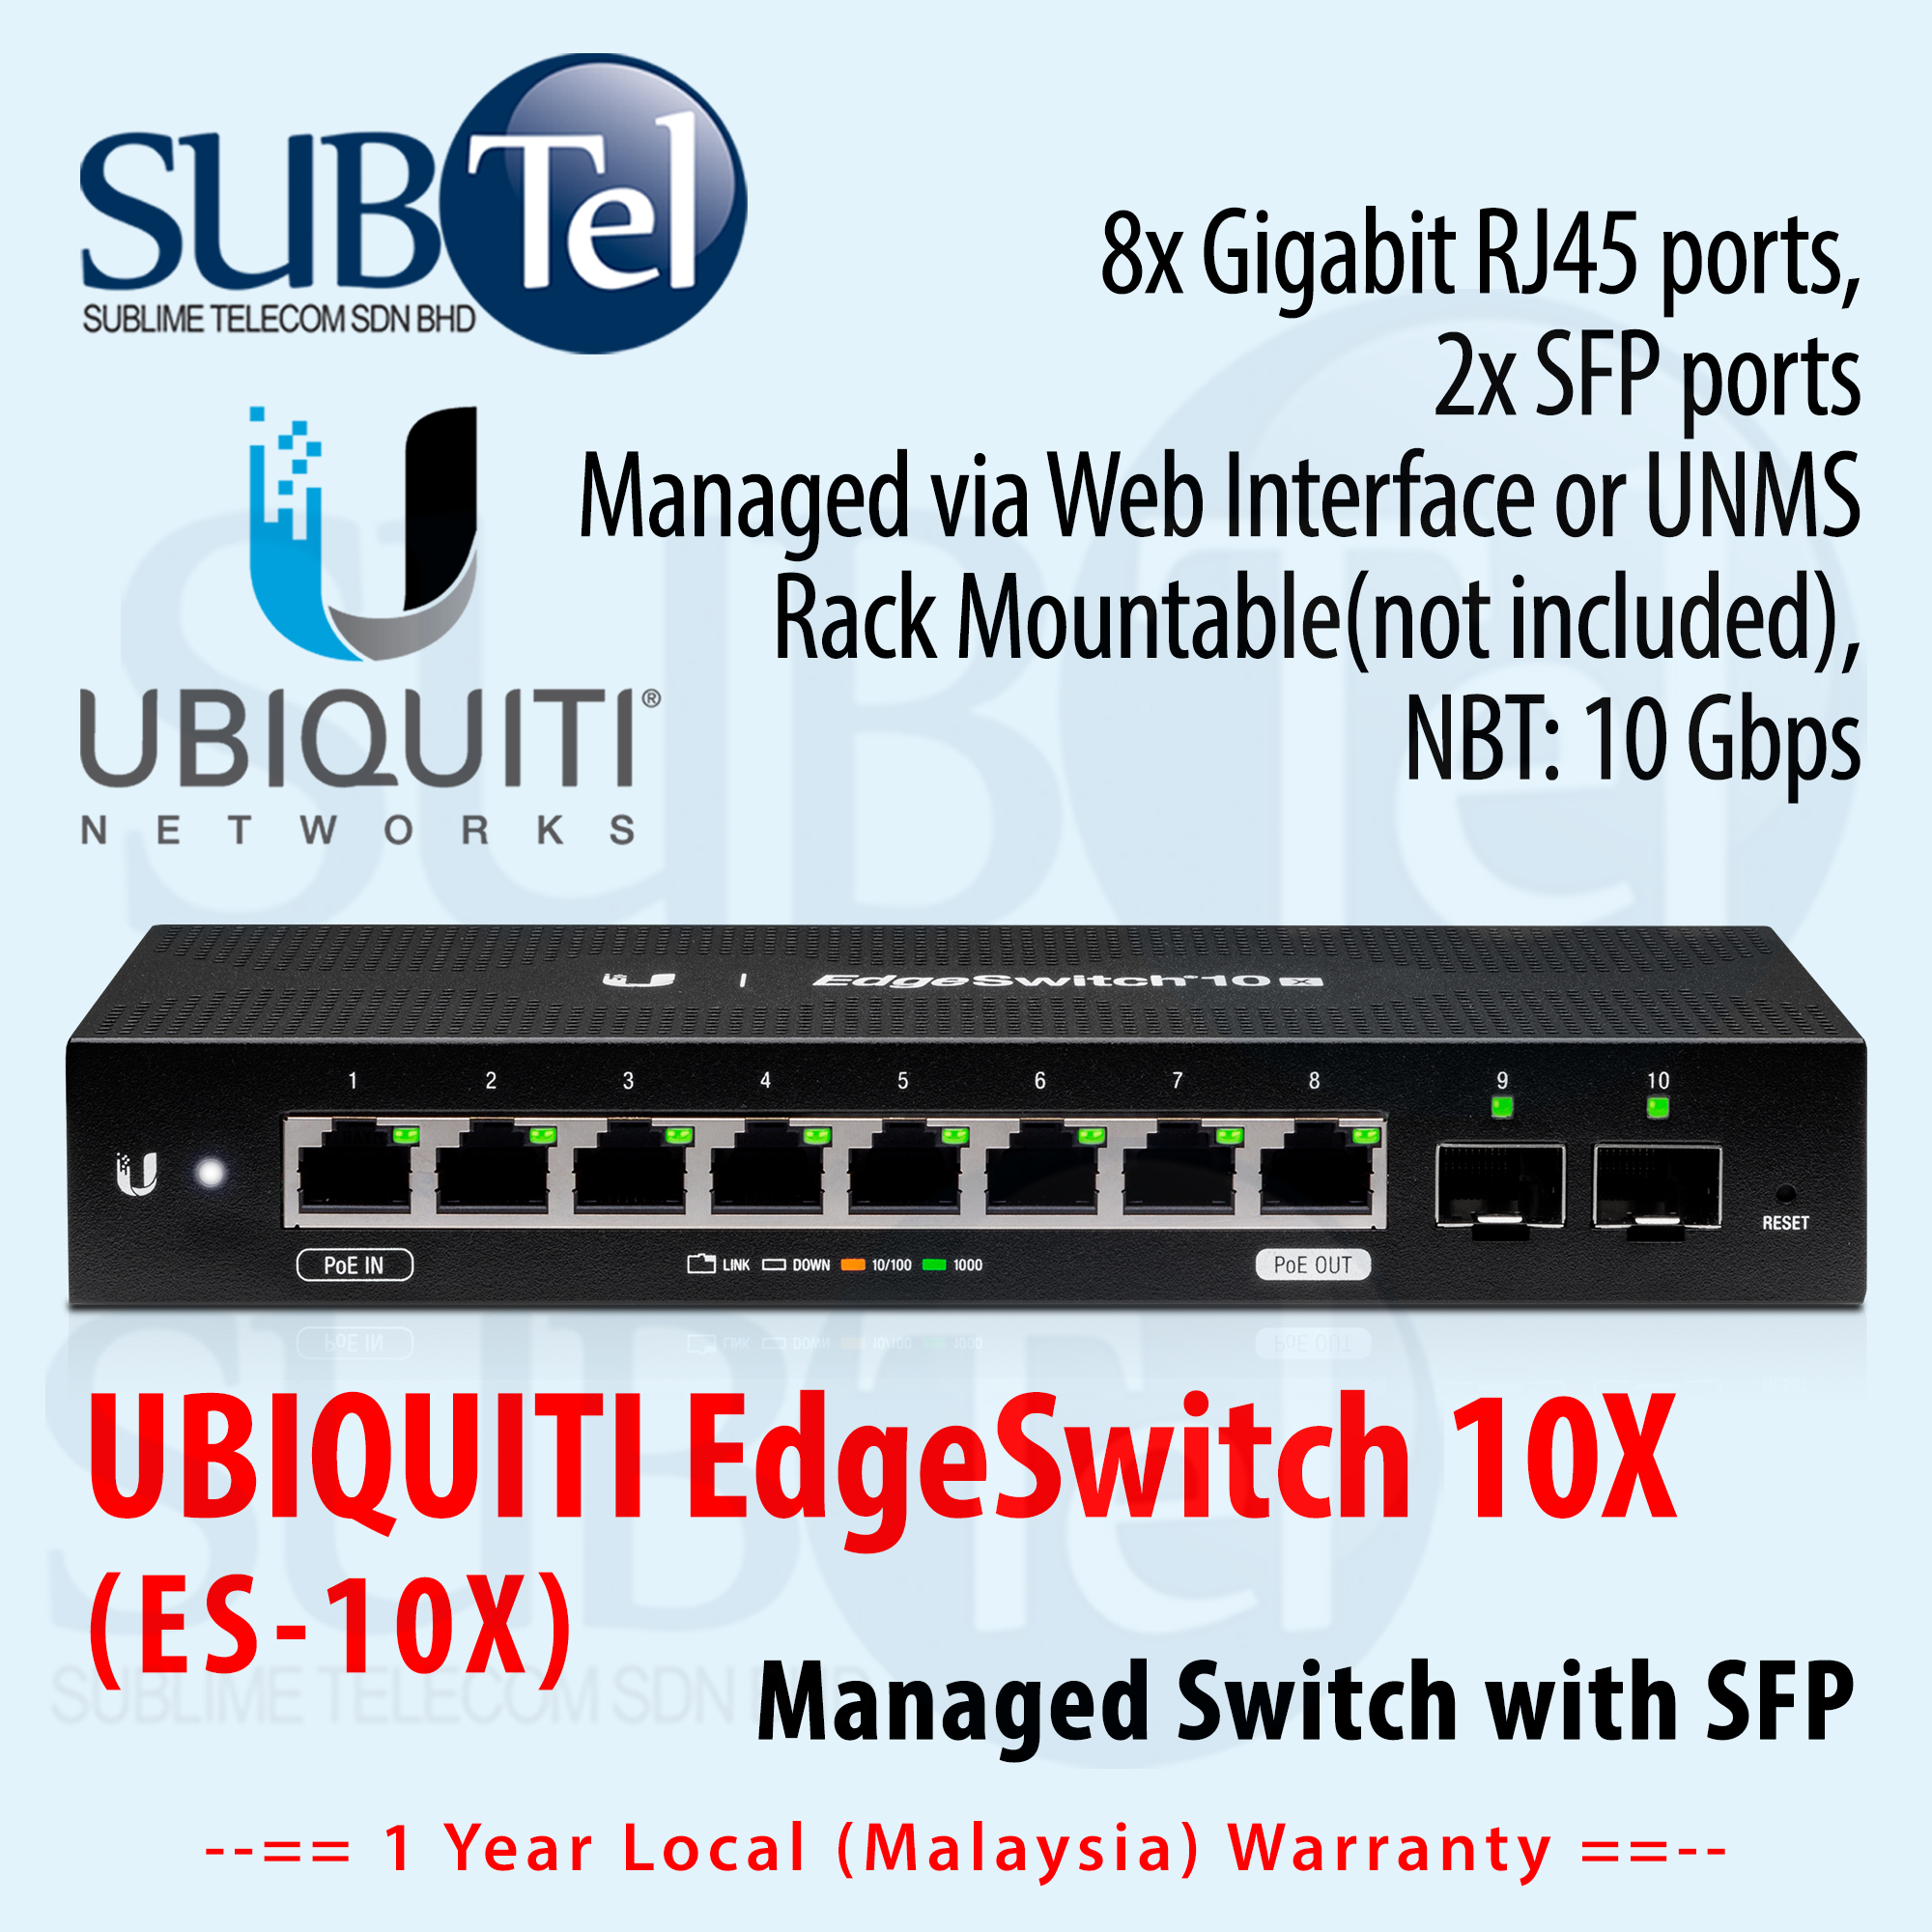 2 SFP 24V POE Fully Managed Switch Ubiquiti EdgeSwitch ES-10X Gigabit 8 Ports